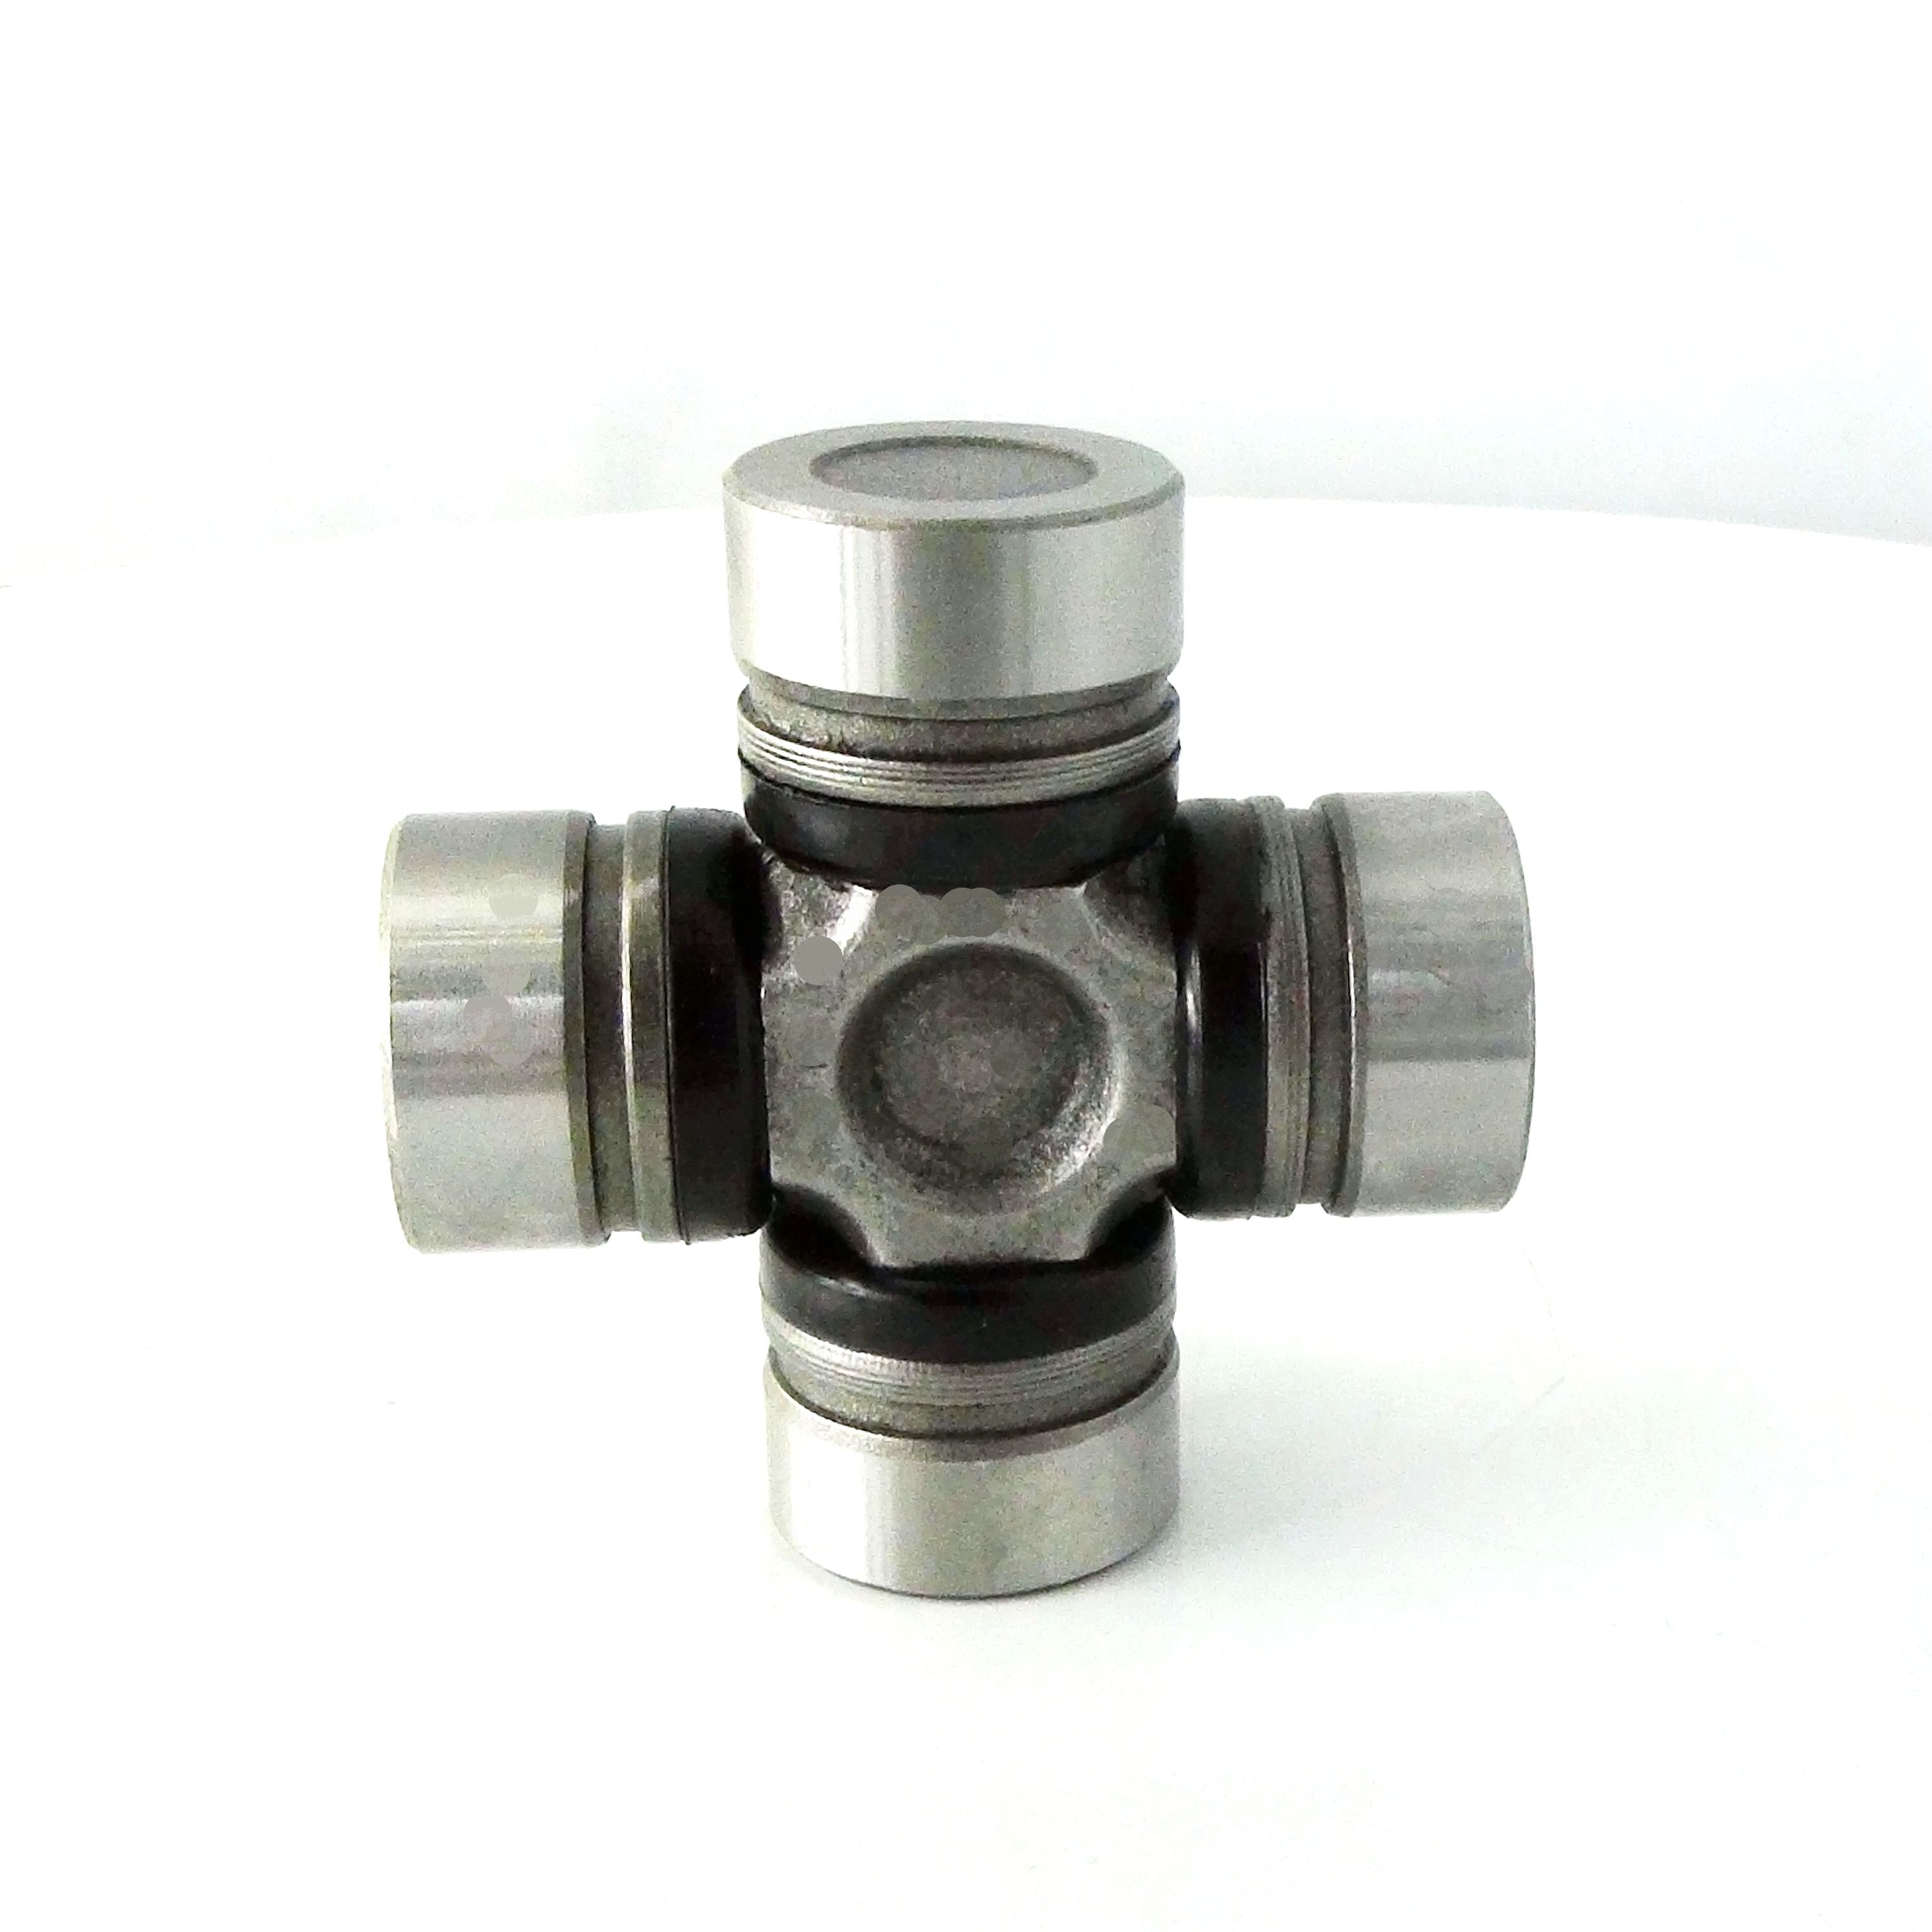 Cardan shaft Cross Universal joint kit for car power train system Caterpillar truck Drive line system KK20*48mm